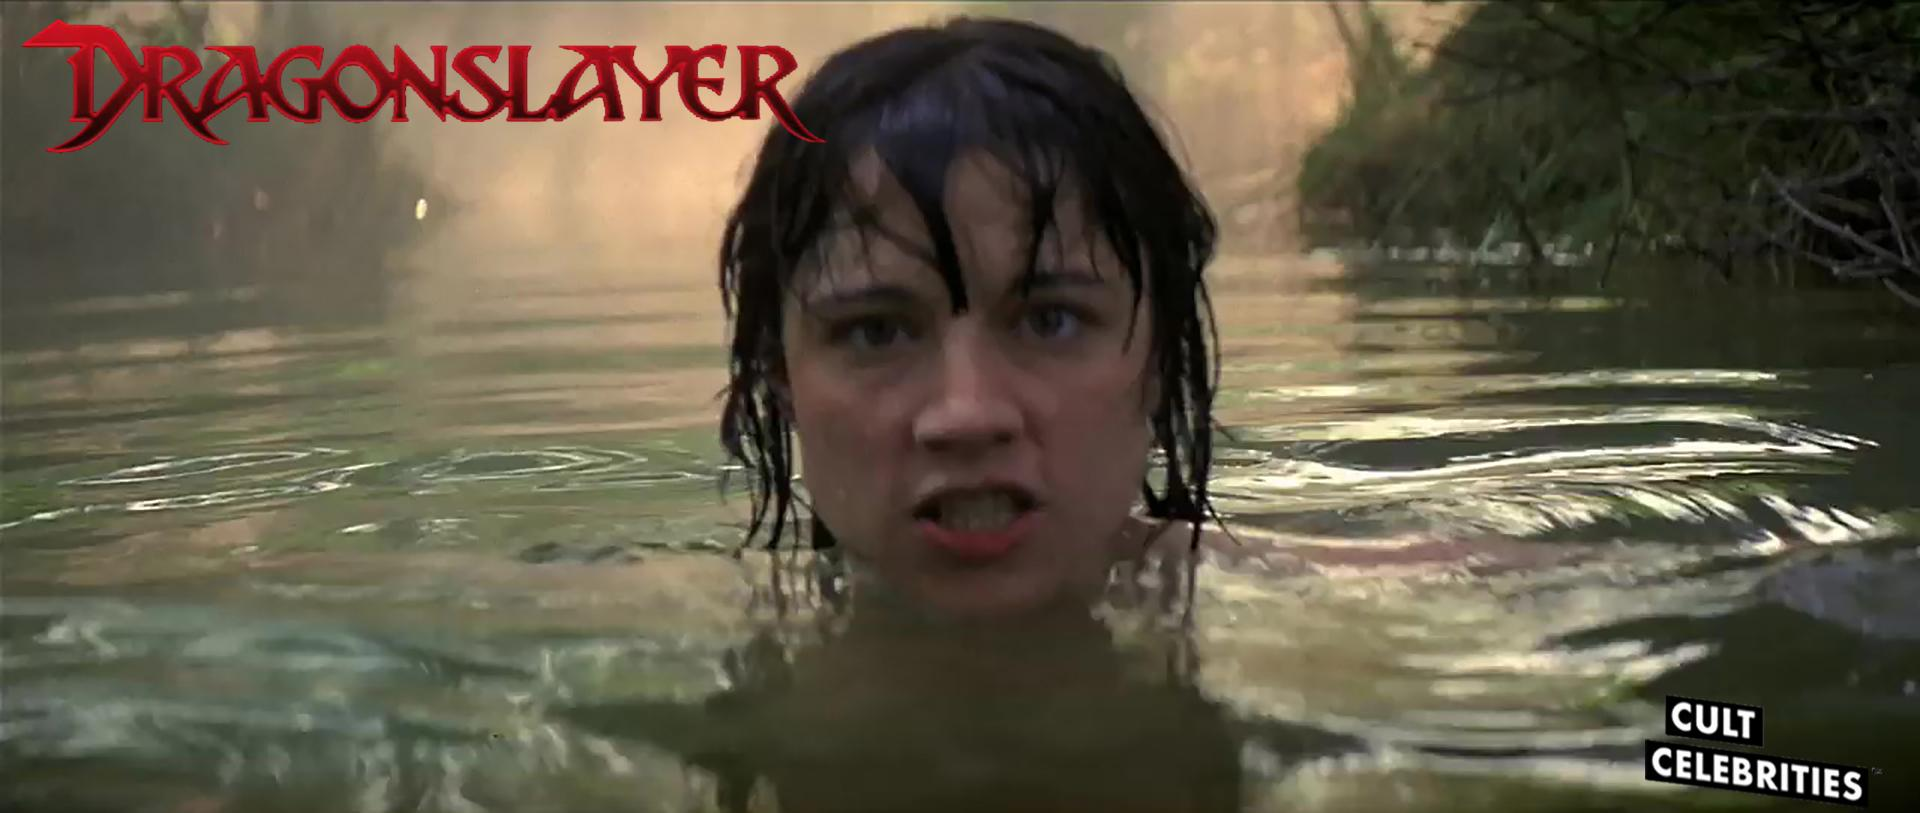 Caitlin Clarke in Dragonslayer (1981)